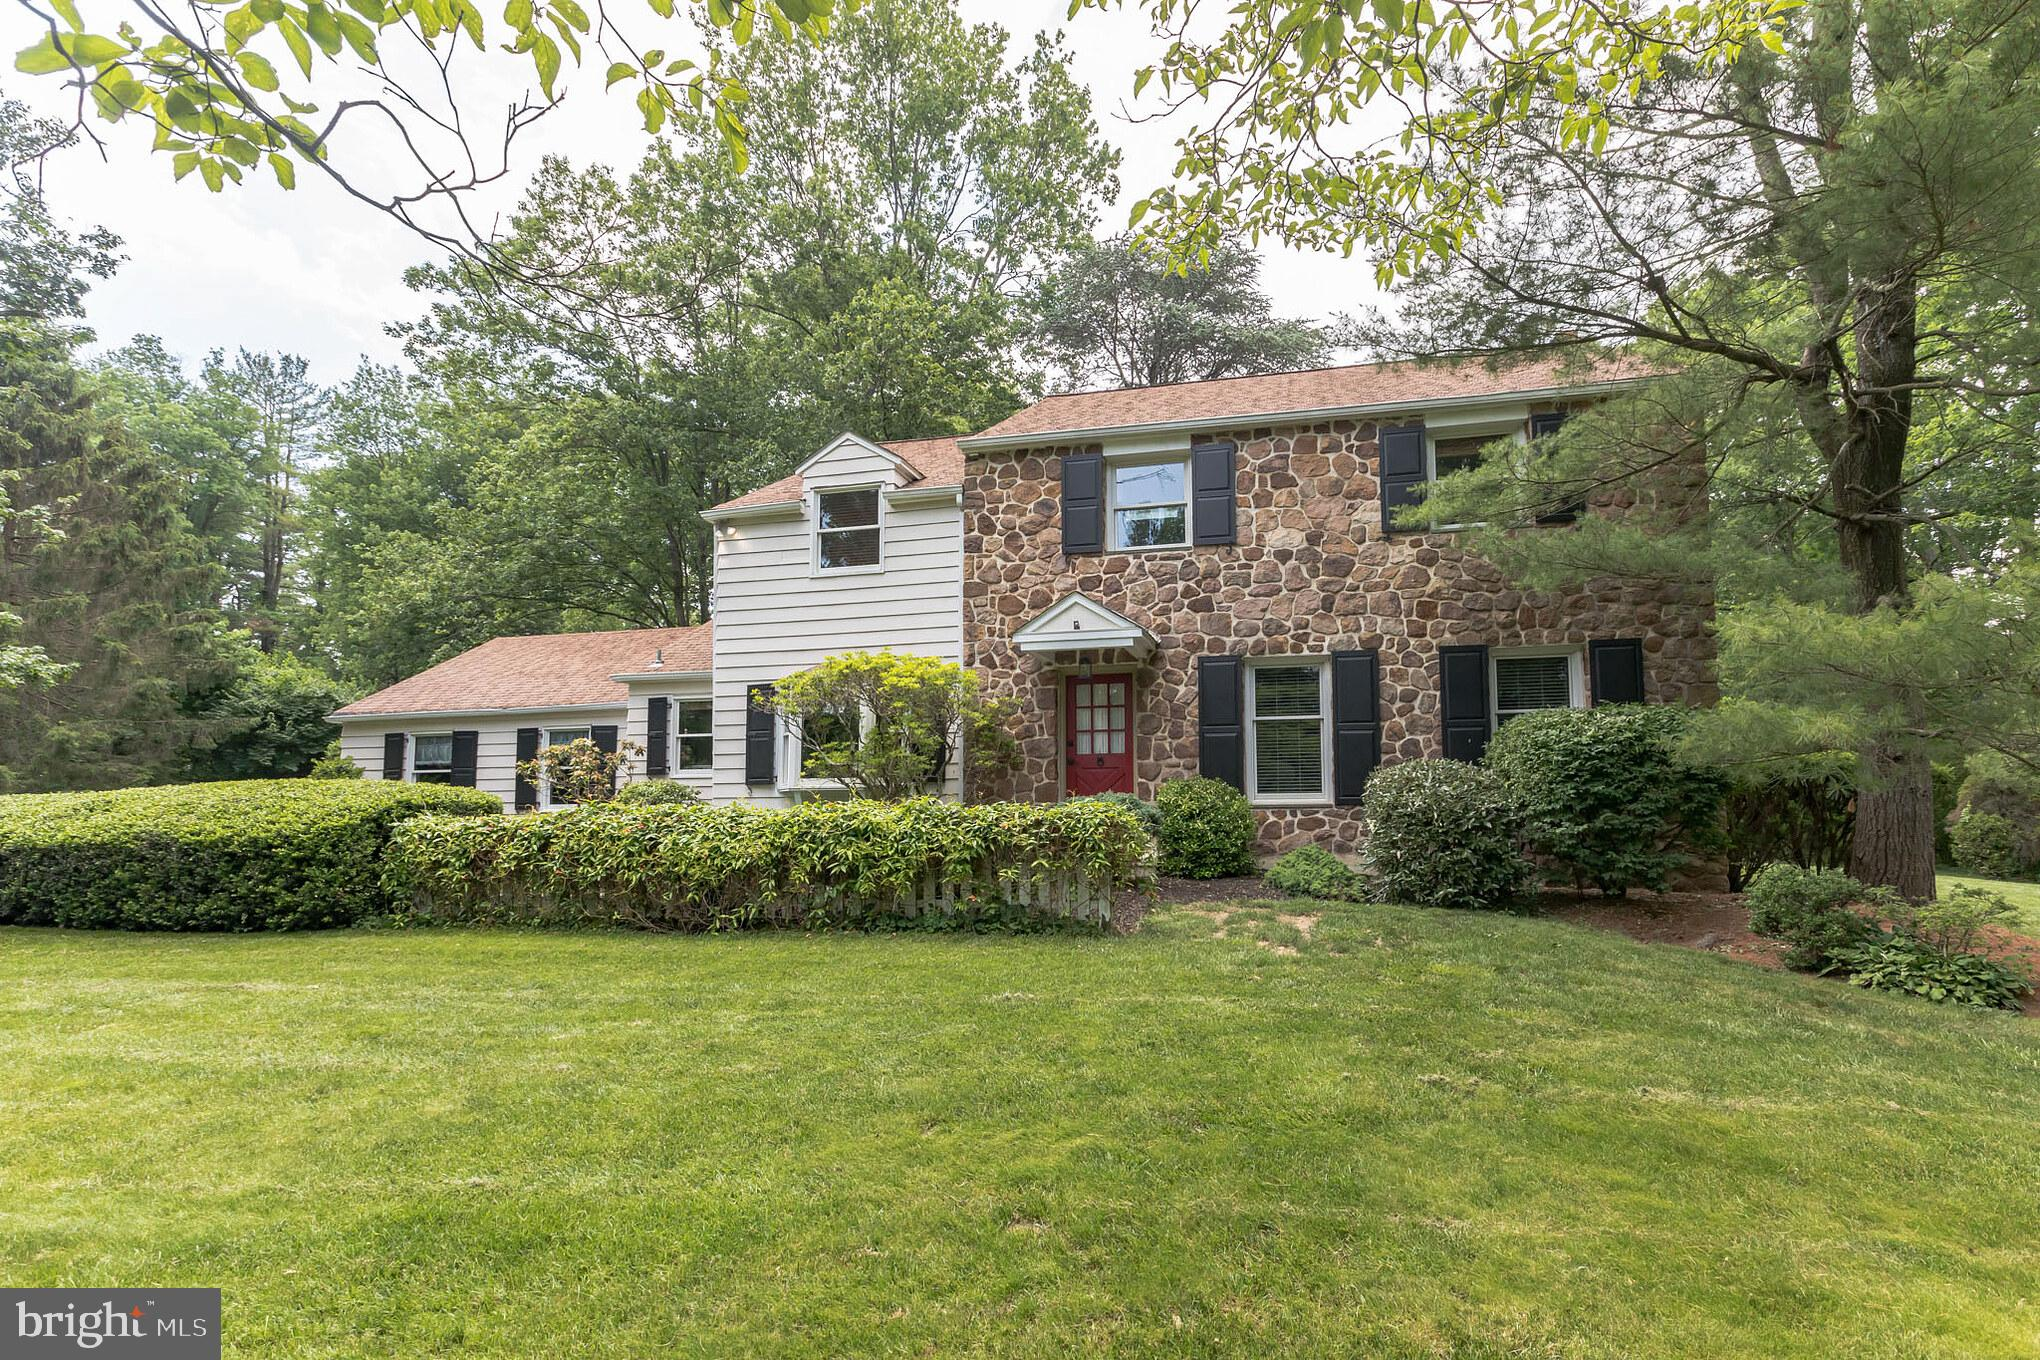 Move right into this beautiful 2-story, 4 bedroom, 2 ½ bath home in highly desirable Easttown Township and T/E School District! This perfect traditional center colonial home has been loved and meticulously maintained by the same owners for the past 25 years!  The Main Level features formal living and dining rooms and an eat-in kitchen that opens to a spacious breakfast room. The kitchen is complete with a large center island with a gas cooktop, double walled over, wood cabinetry, recessed lighting and stainless steel appliances. A large study/family room with wood burning fireplace, main floor laundry, powder room and access to the garage complete the first floor. The second floor houses the primary bedroom with a walk-in closet and primary bath, 3 additional generously sized bedrooms and a hall bath. Downstairs the finished basement adds close to 400 additional square feet and is perfect for the entire family with plenty of room for entertaining or additional storage!  The screened-in porch and pergola-covered paver patio are ideal for entertaining and the private, flat backyard is bordered by the meadow and pond of the Upper Mainline YMCA grounds.  Close and convenient access to shopping,  dining and the town centers of Berwyn, Devon, Wayne and Paoli.  Don't miss your chance, schedule your private showing today!